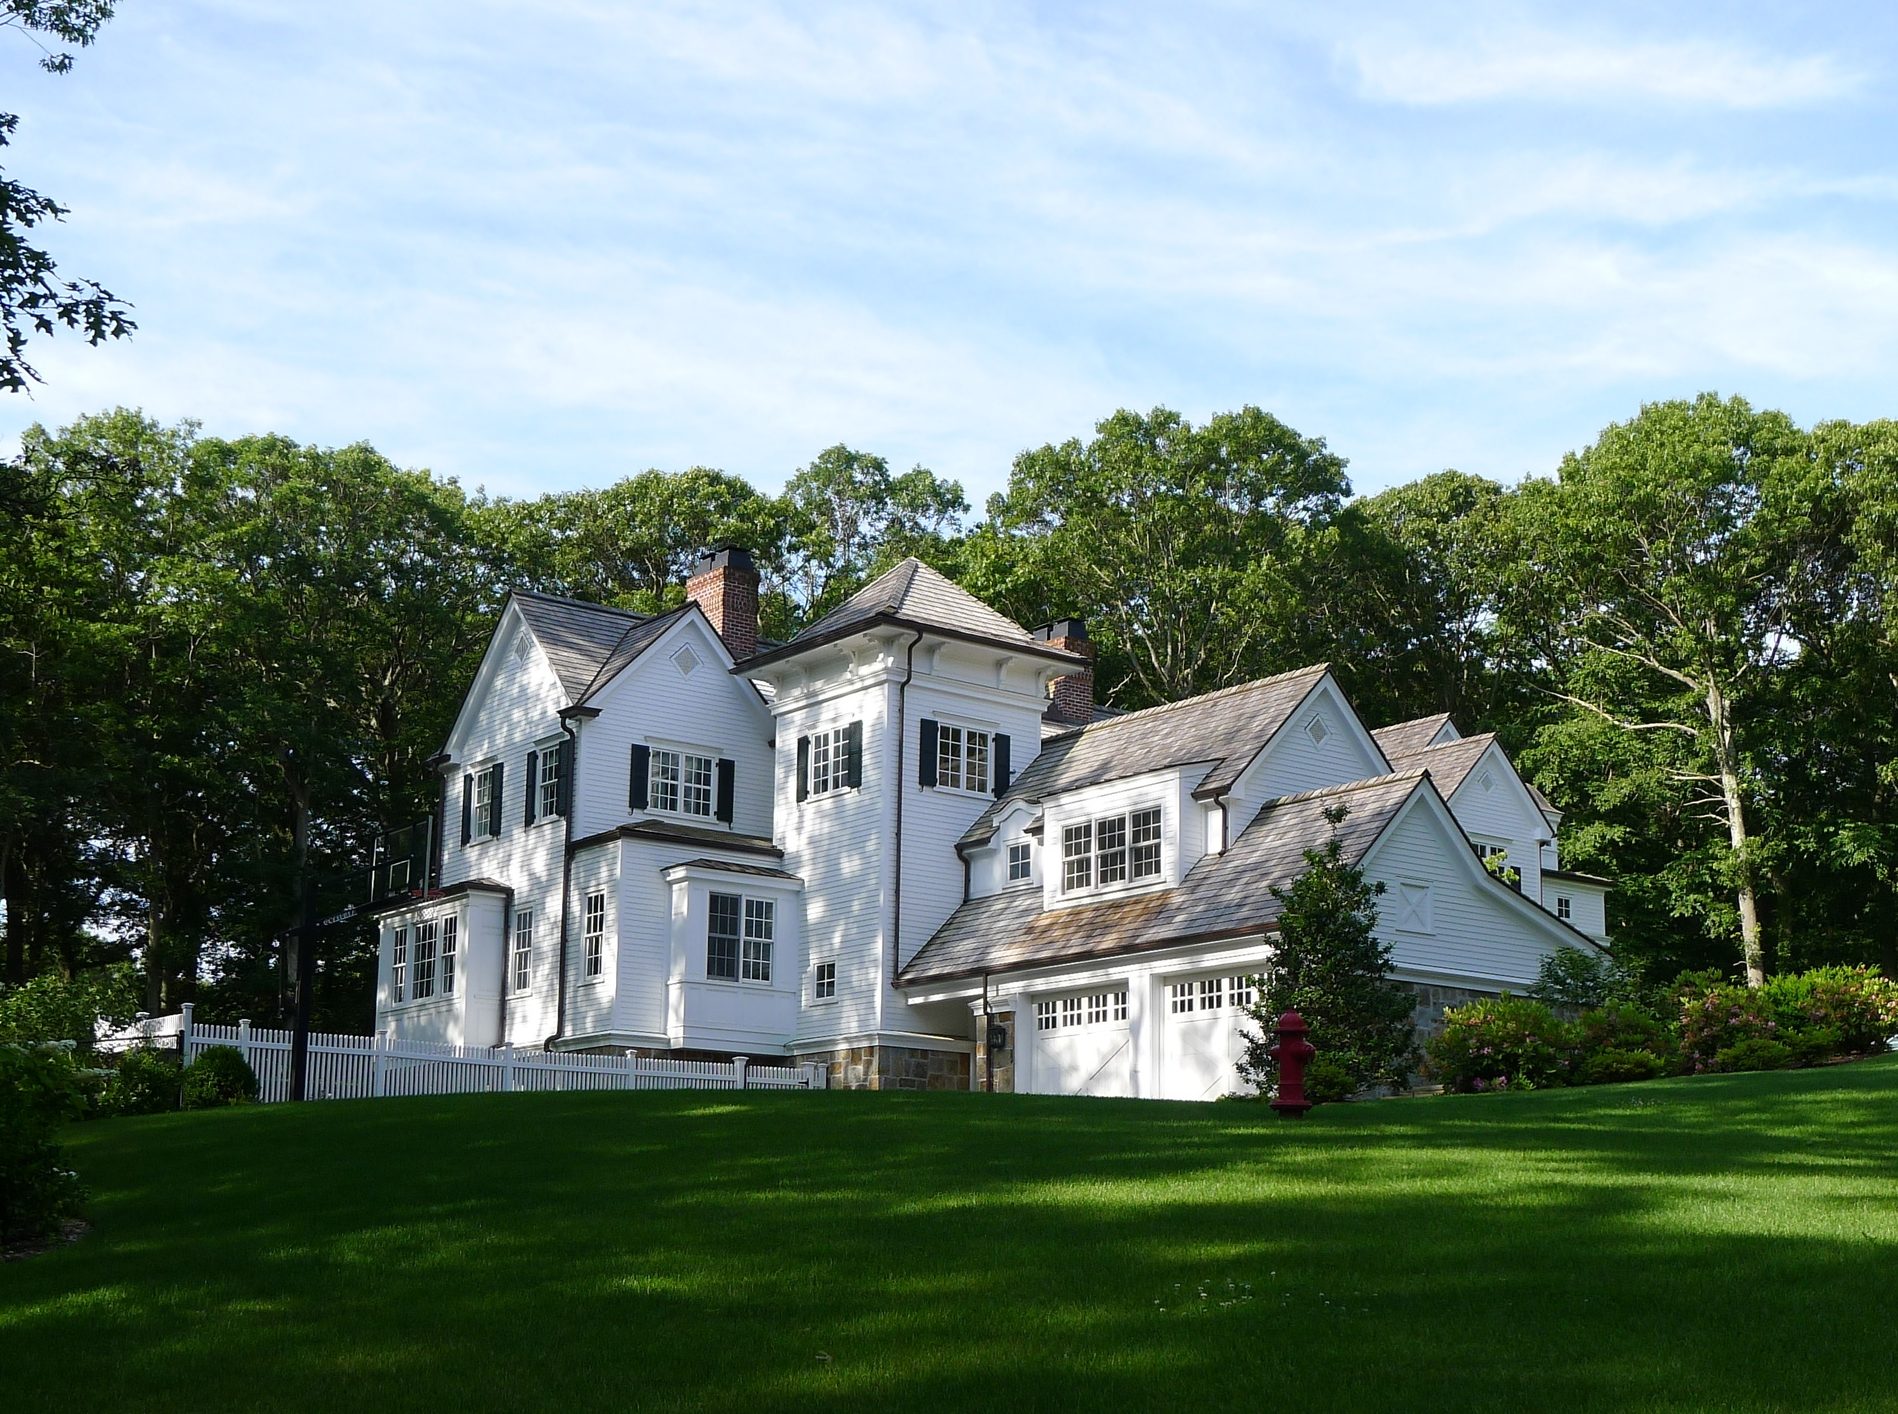 House in Mill Neck - New York 2007